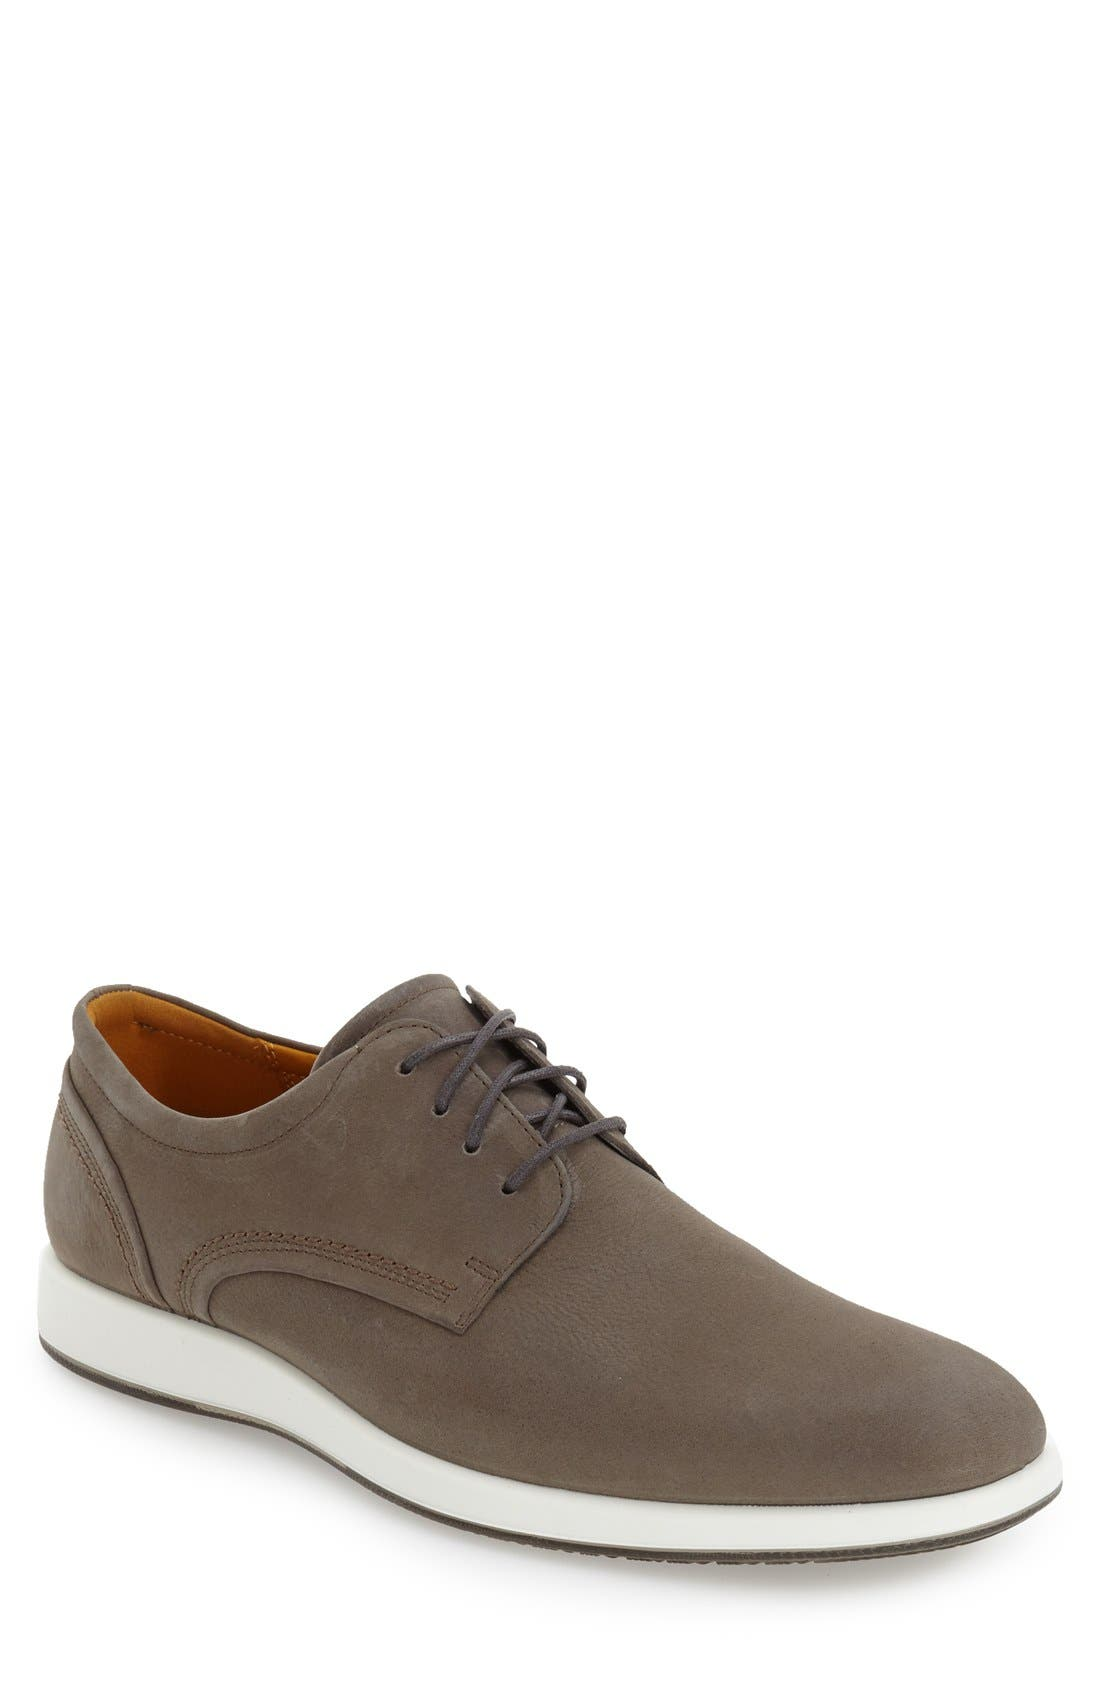 'Jared' Leather Oxford, Main, color, 062